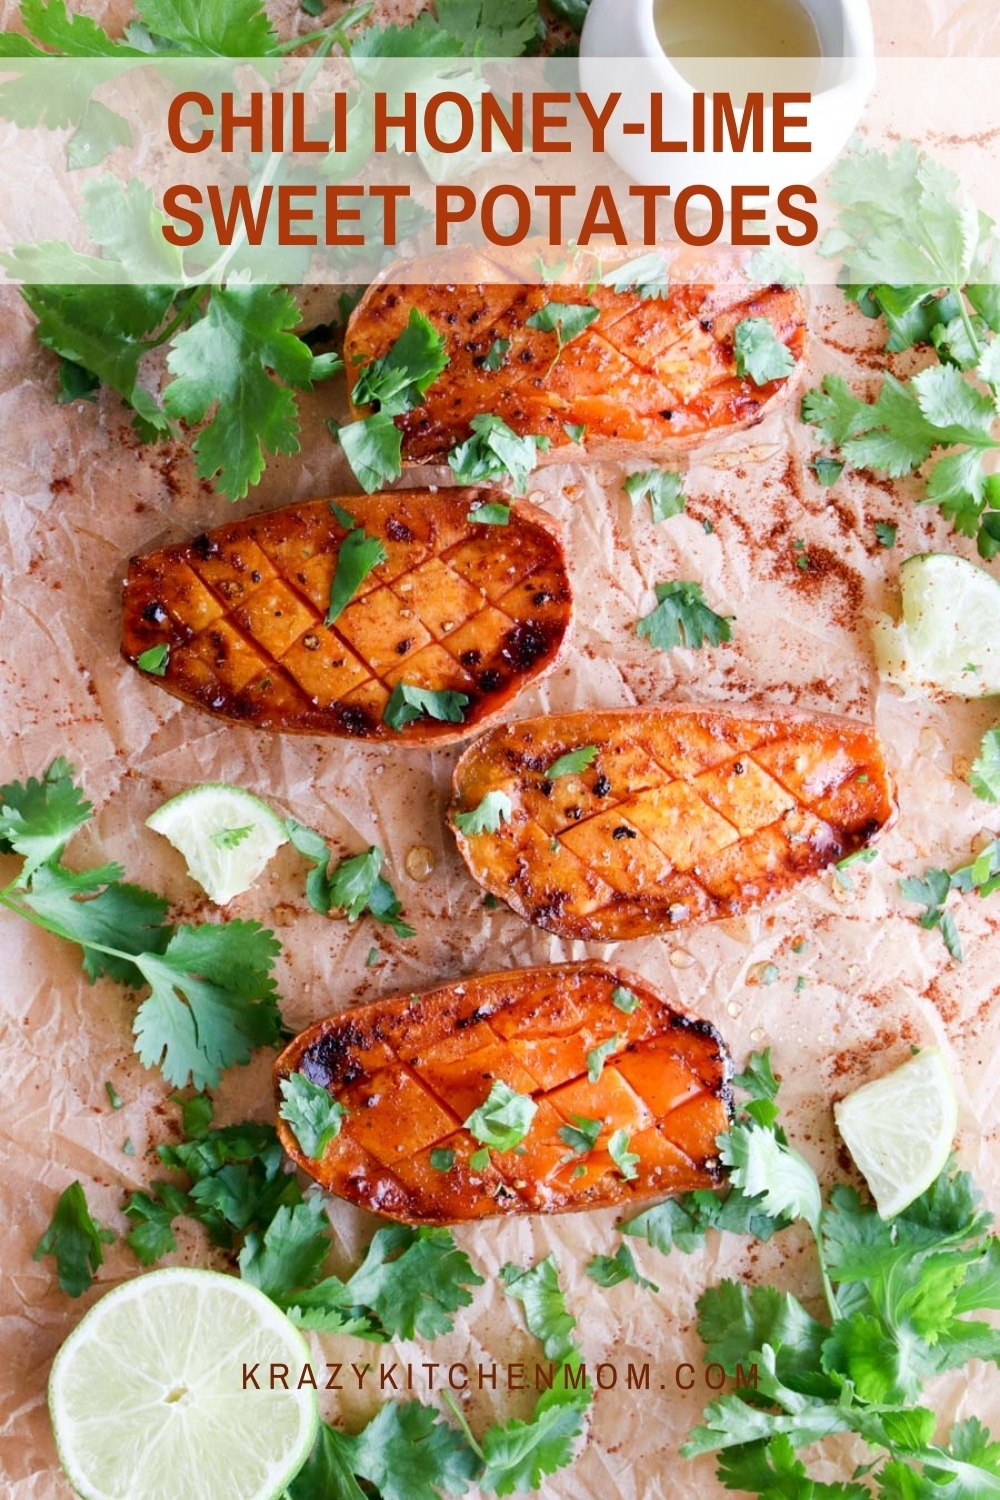 Sweet, spicy, savory sweet potatoes are slow-roasted creating a mouth-watering cartelized flavor making the perfect side dish. via @krazykitchenmom